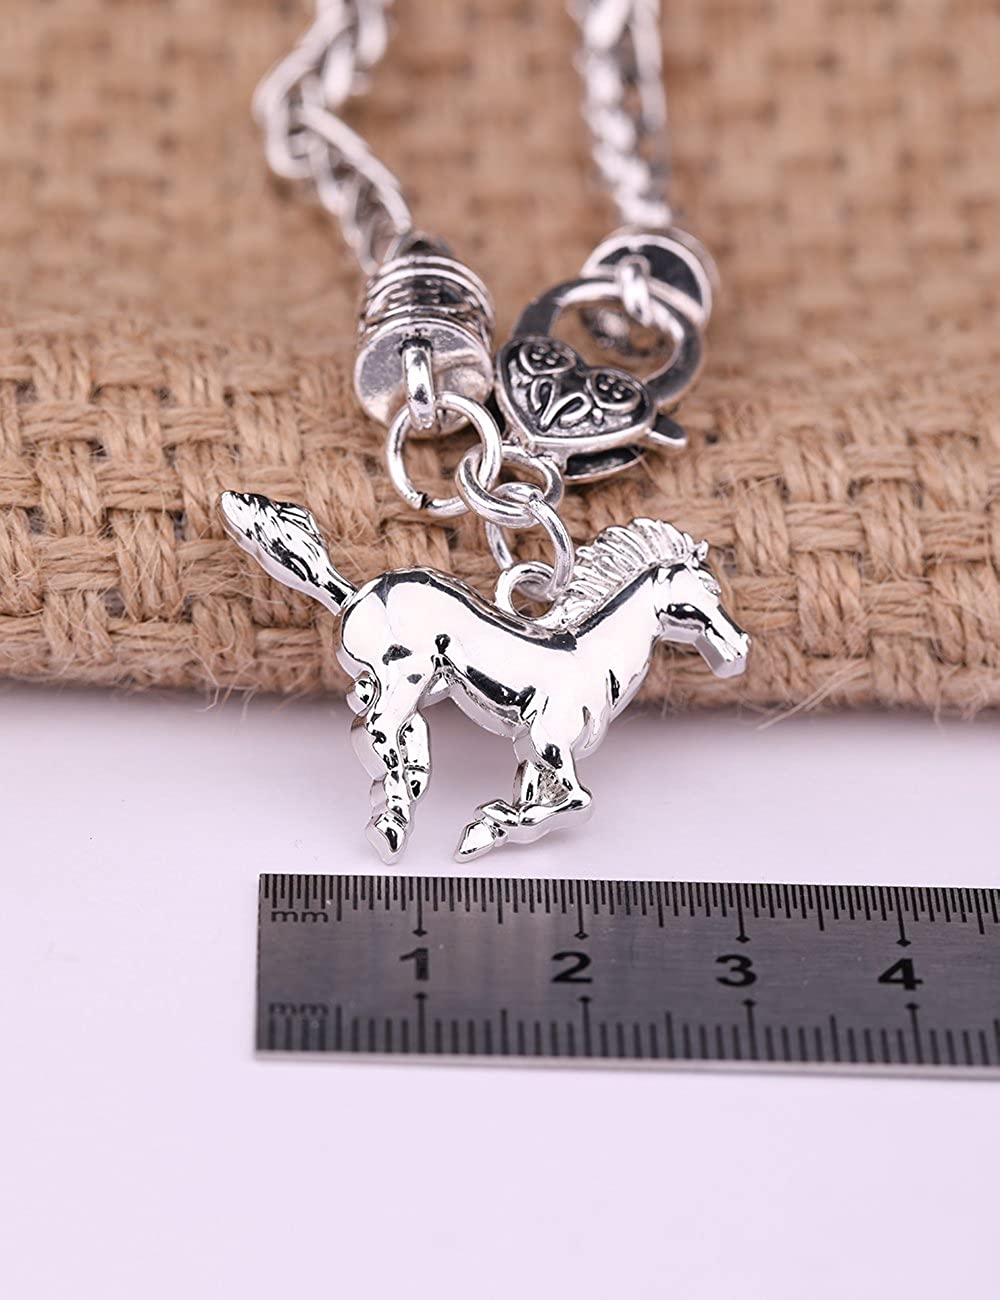 Lemegeton Antique Silver Heart Bracelet Character Engraved Pendant Wheat Chain for Women Girls Gift Jewelry